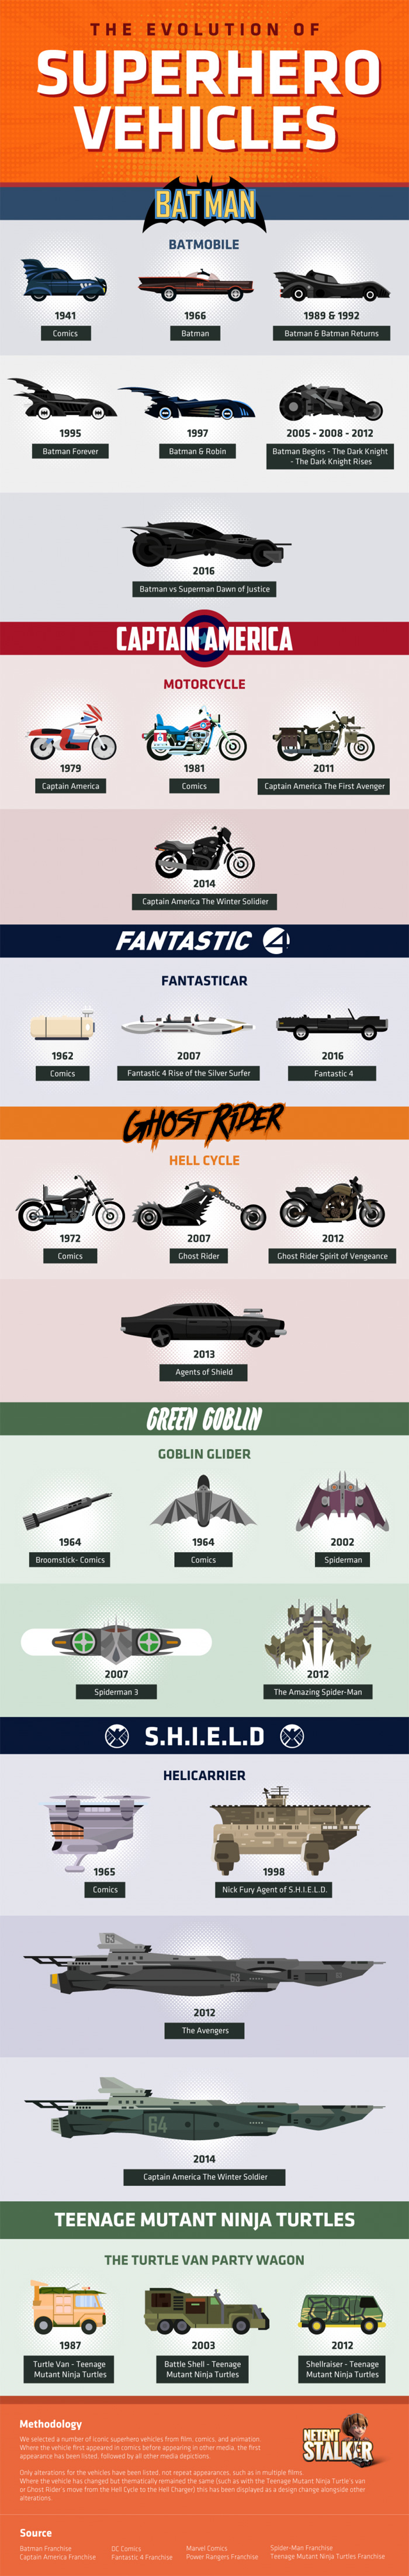 The Evolution of Superhero Vehicles